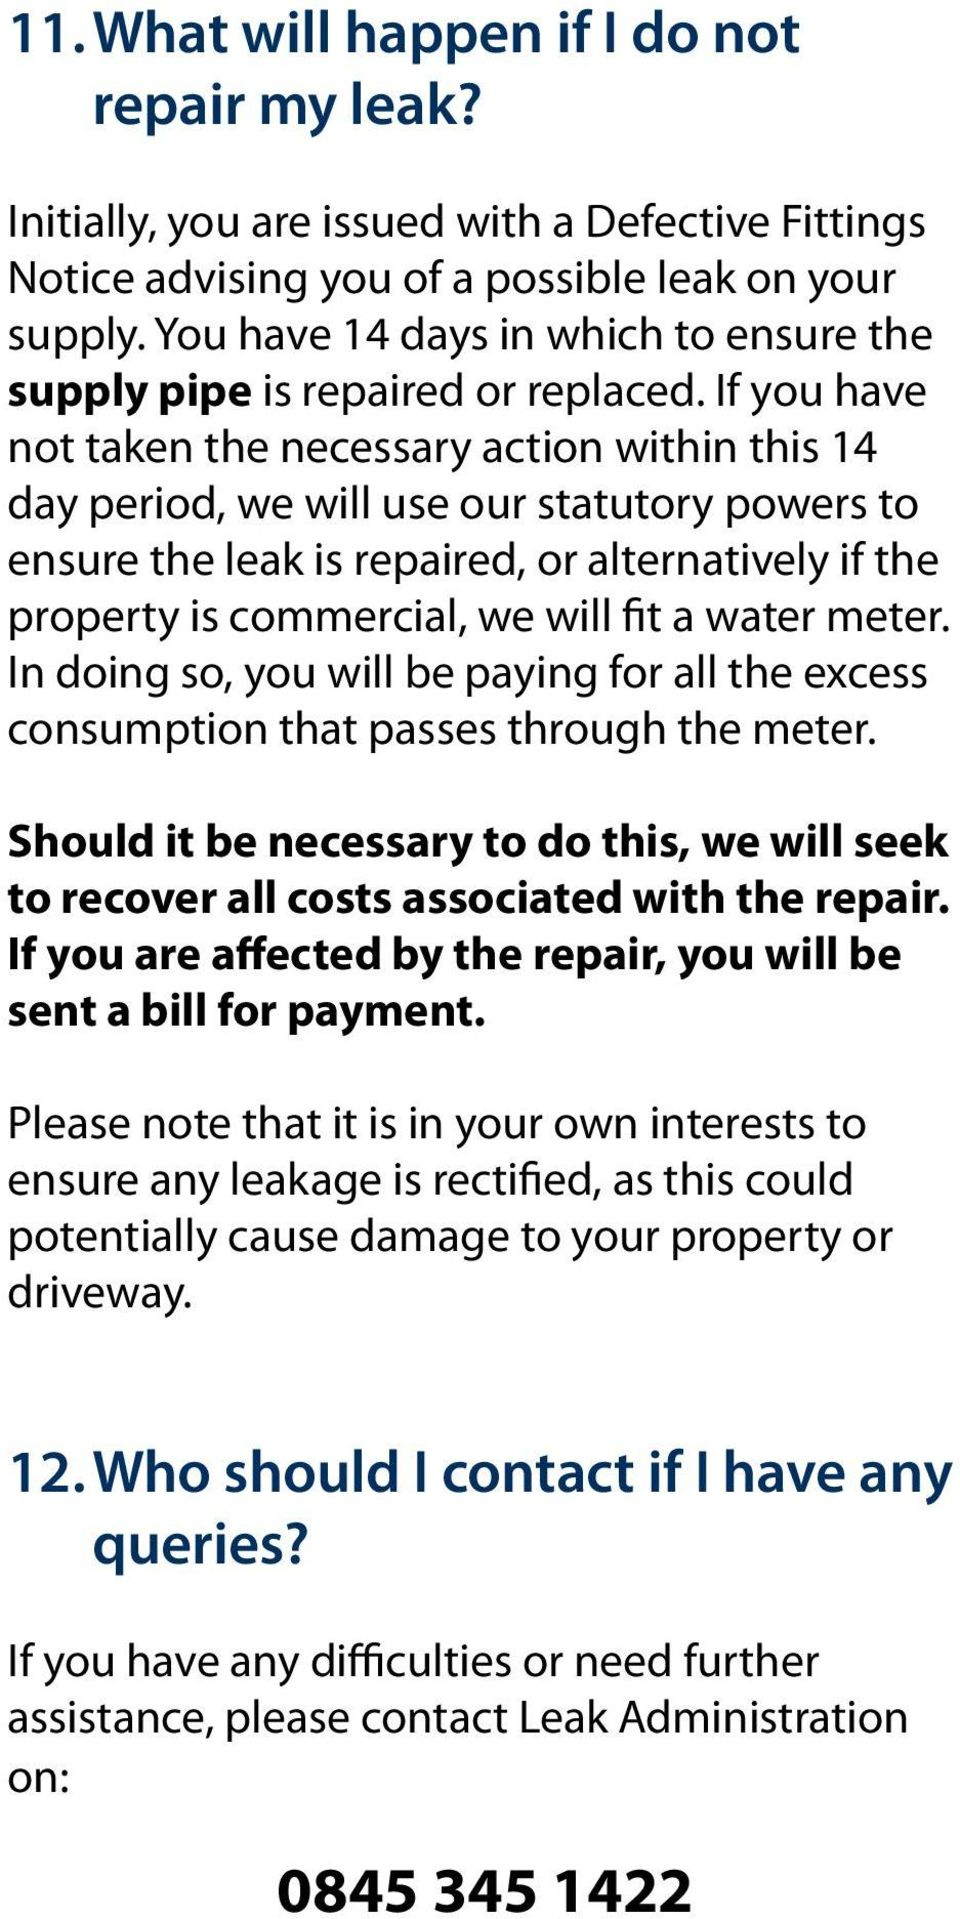 If you have not taken the necessary action within this 14 day period, we will use our statutory powers to ensure the leak is repaired, or alternatively if the property is commercial, we will fit a